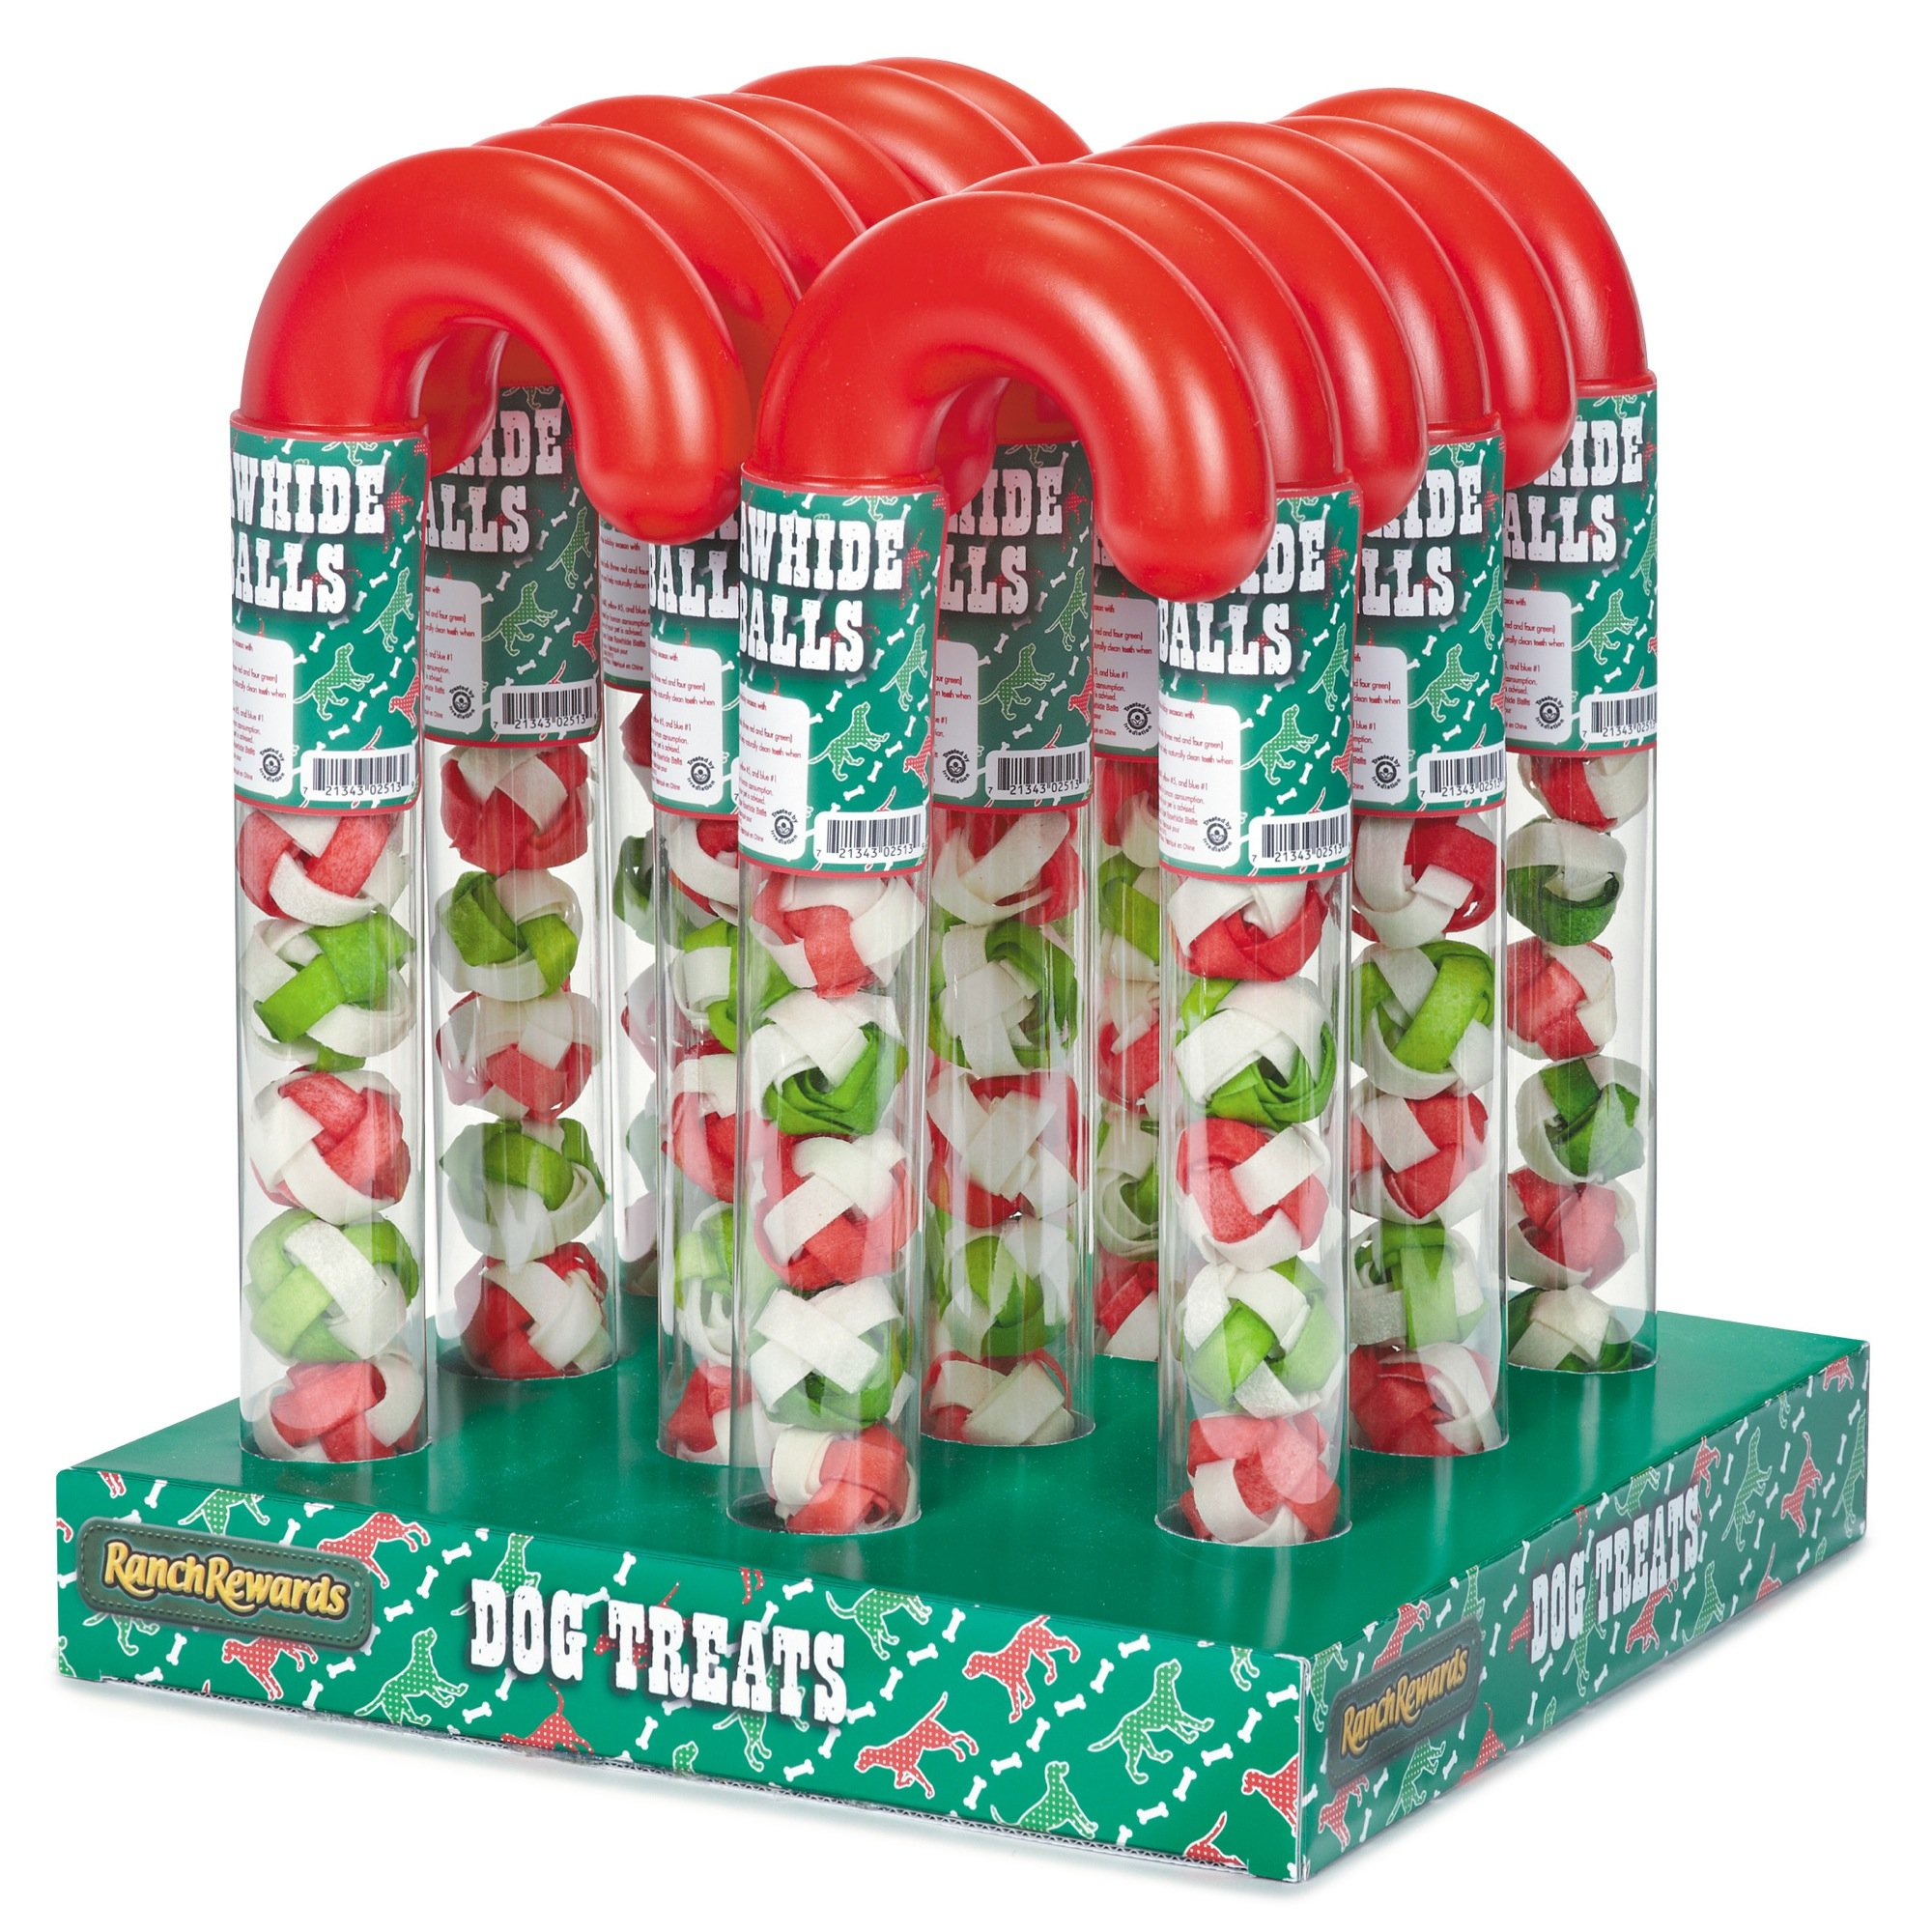 Ranch Rewards Candy Cane Tube Displays Festive Holiday Gifts for Dogs (12 Pack)